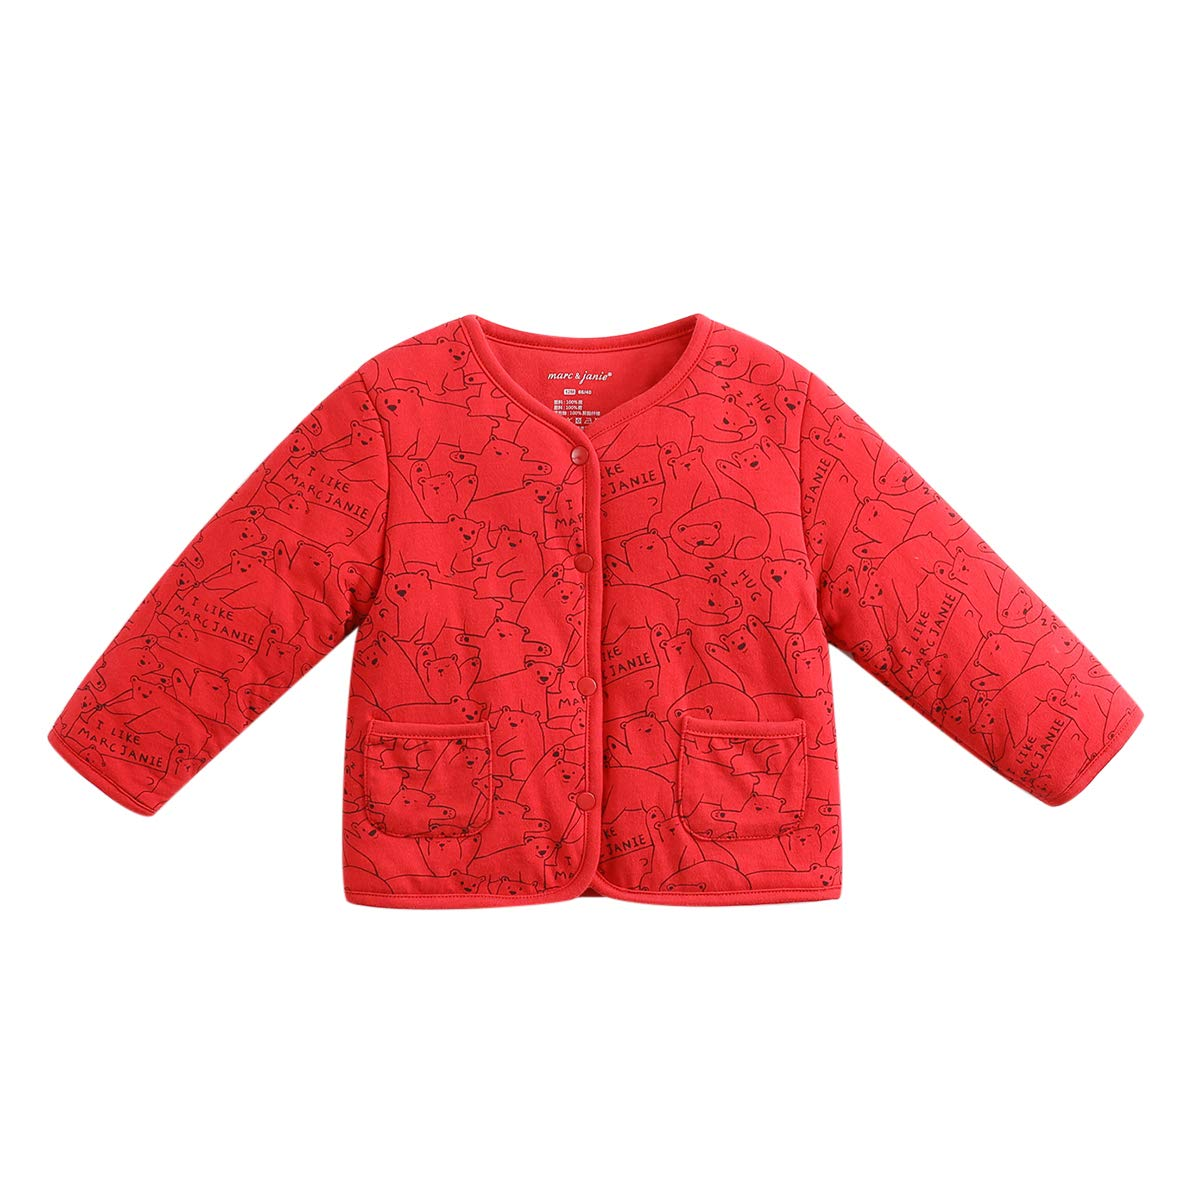 marc janie Baby Boys Girls Winter Warm Cotton Jacket